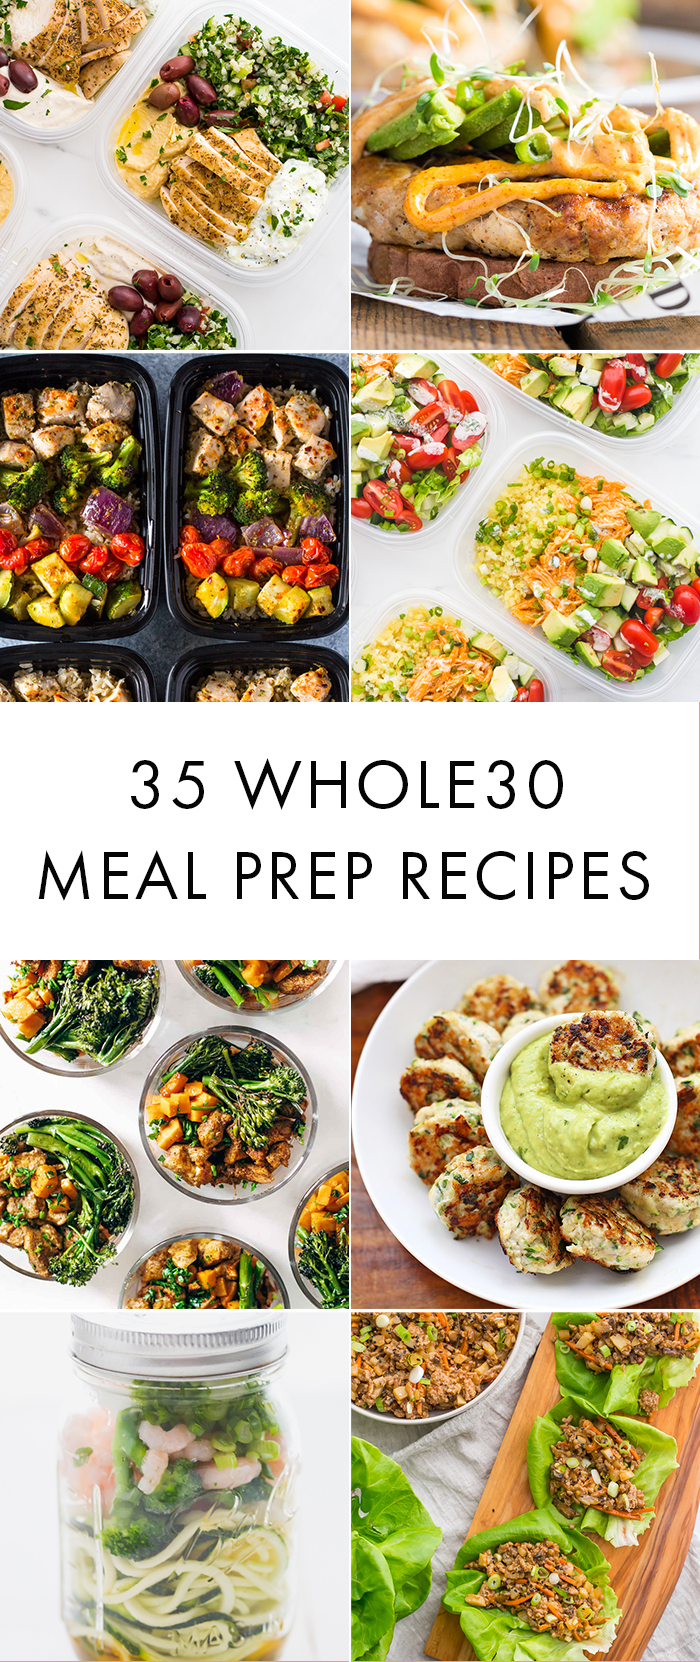 35 Whole30 Meal Prep Recipes (Whole Breakfasts, Whole30 Lunches)